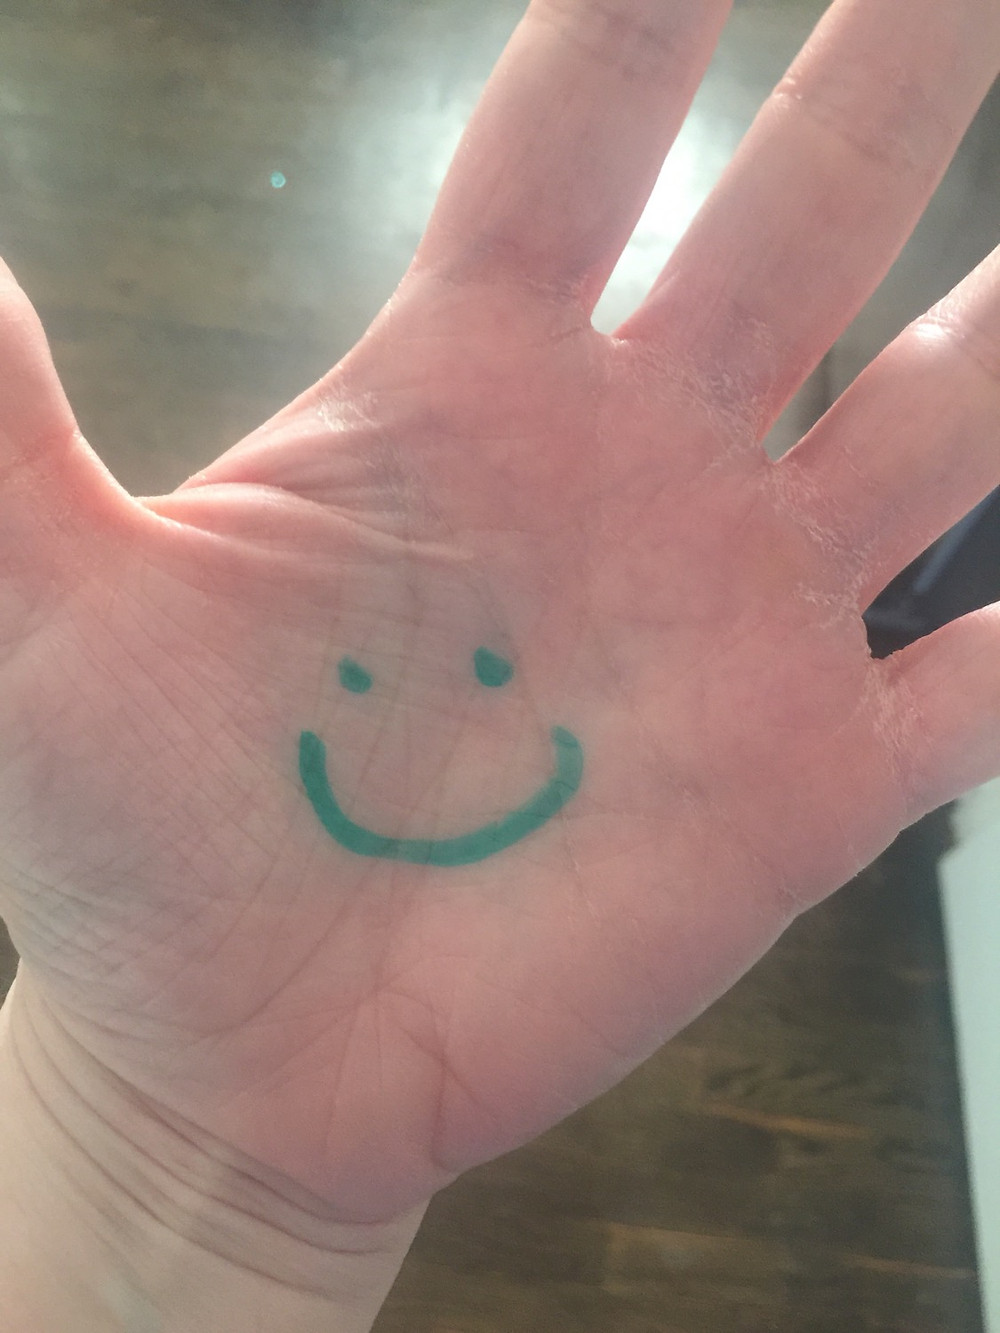 Palm with green marker smiley for World Adoption Day